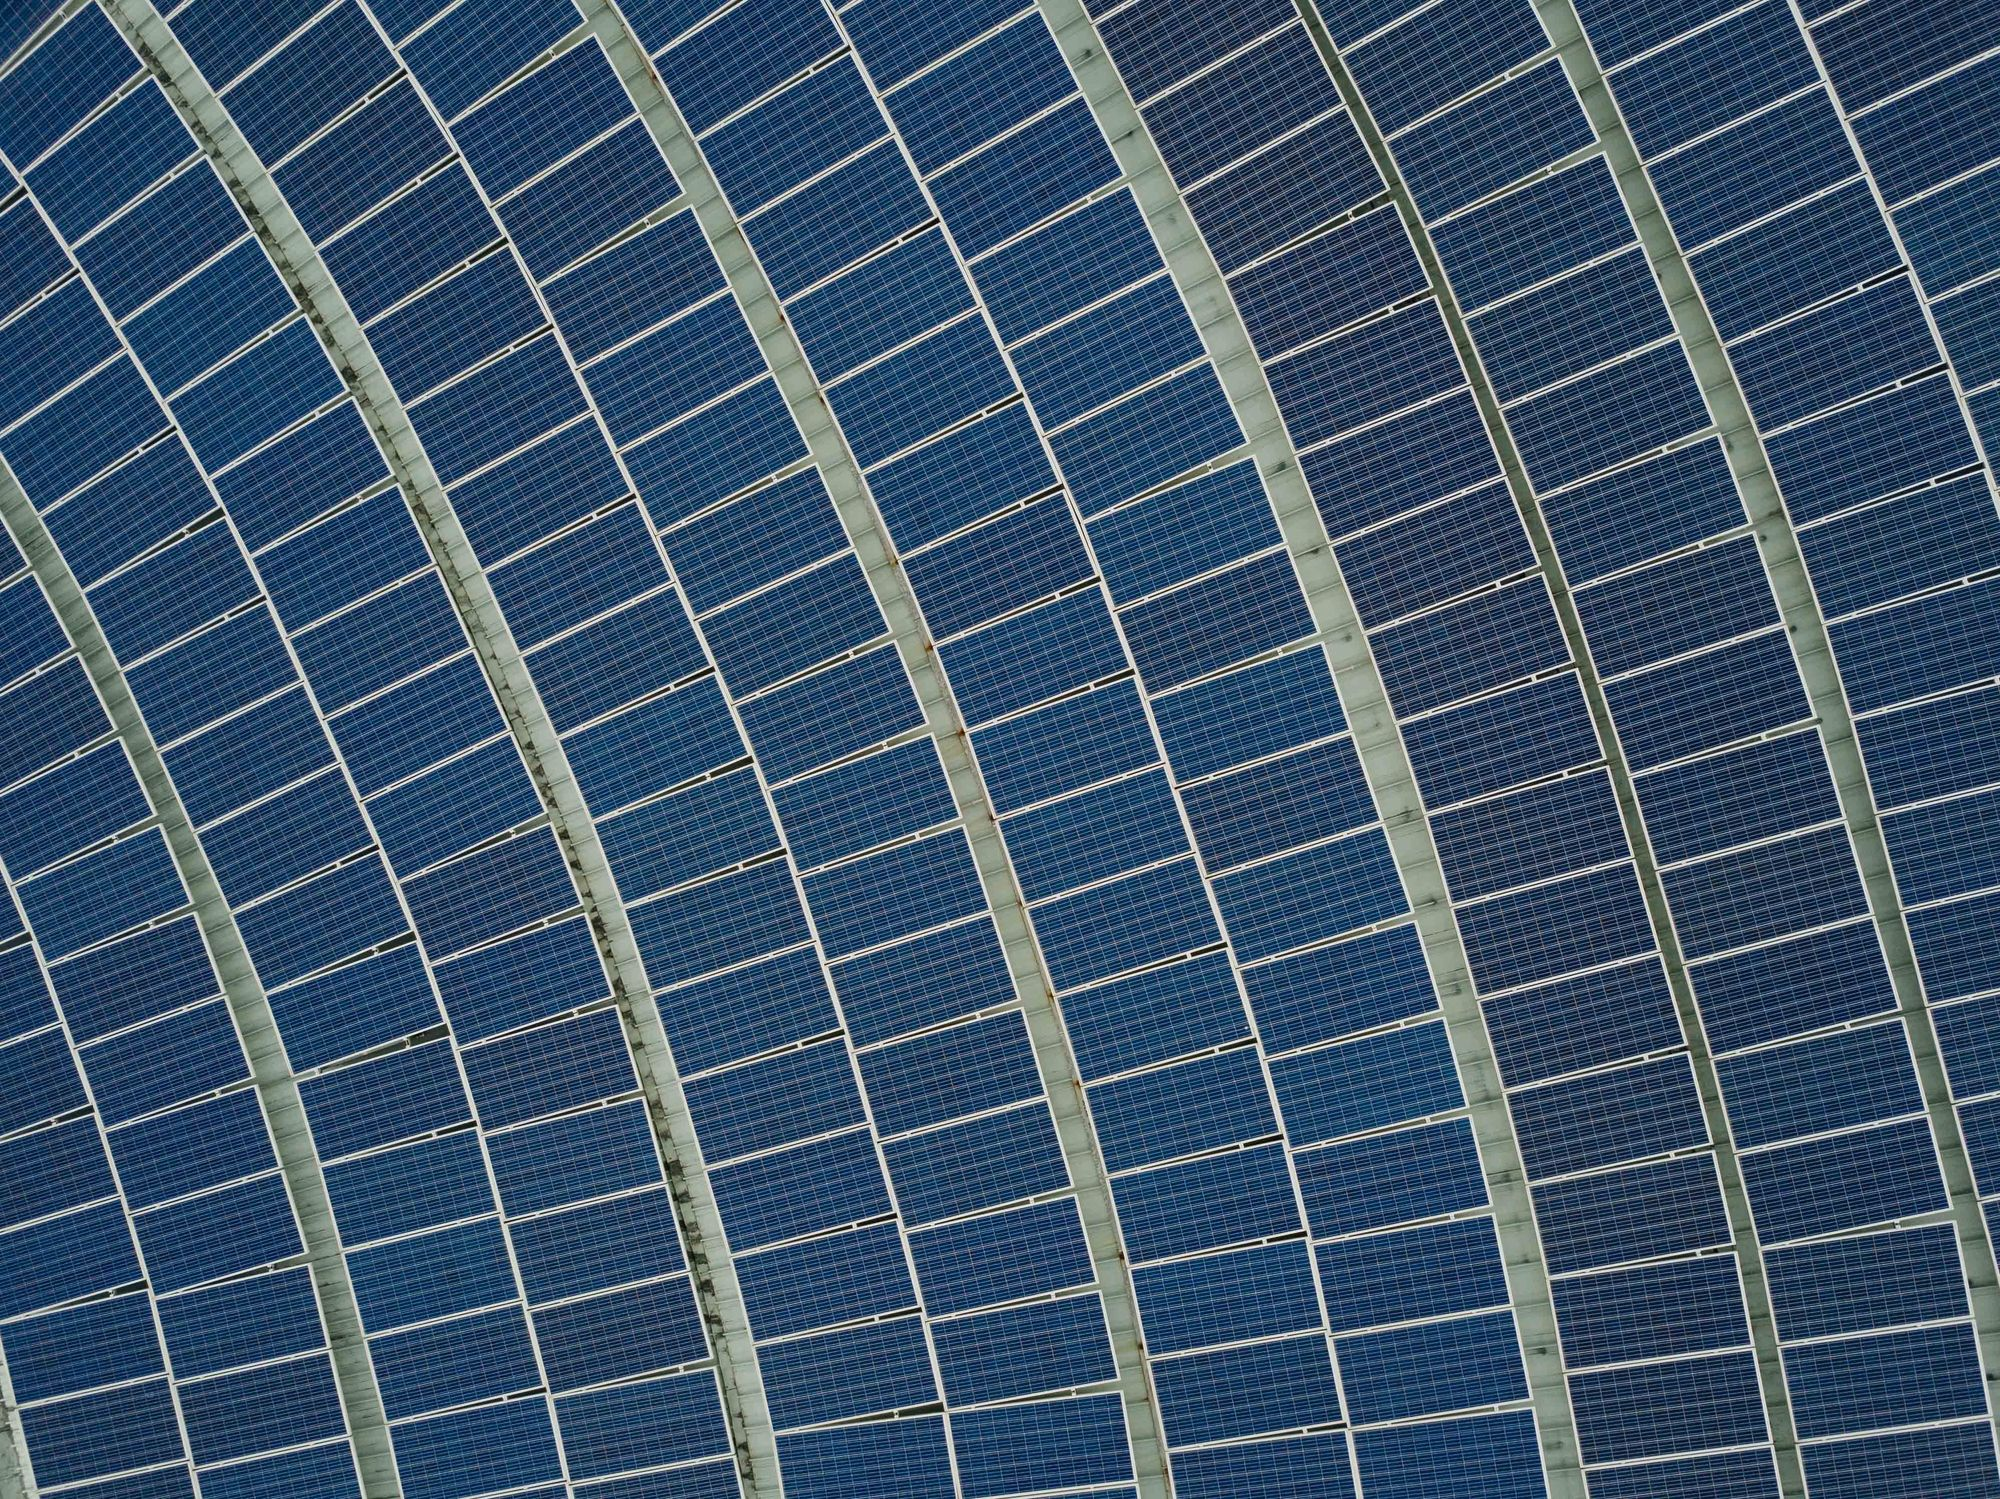 AltEnergyMag: Wunder Capital Is Revolutionizing the Commercial Solar Market